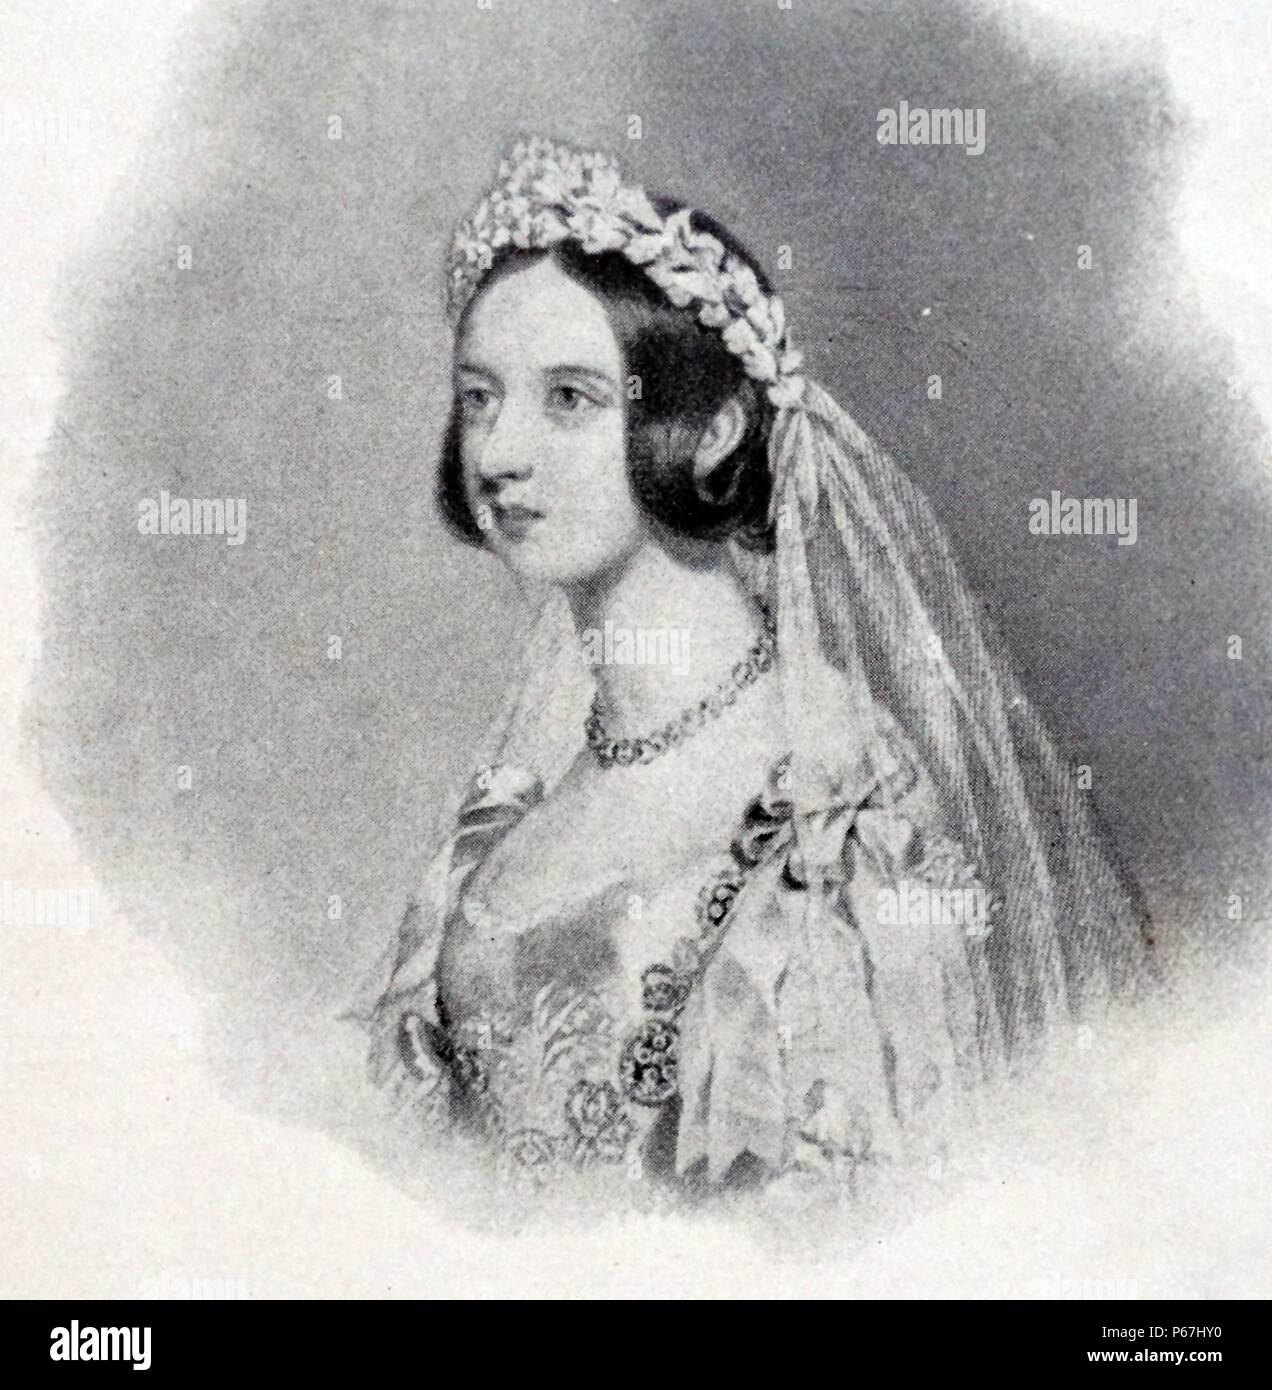 White Wedding Dress Queen Victoria: Queen Victoria Wedding Dress Stock Photos & Queen Victoria